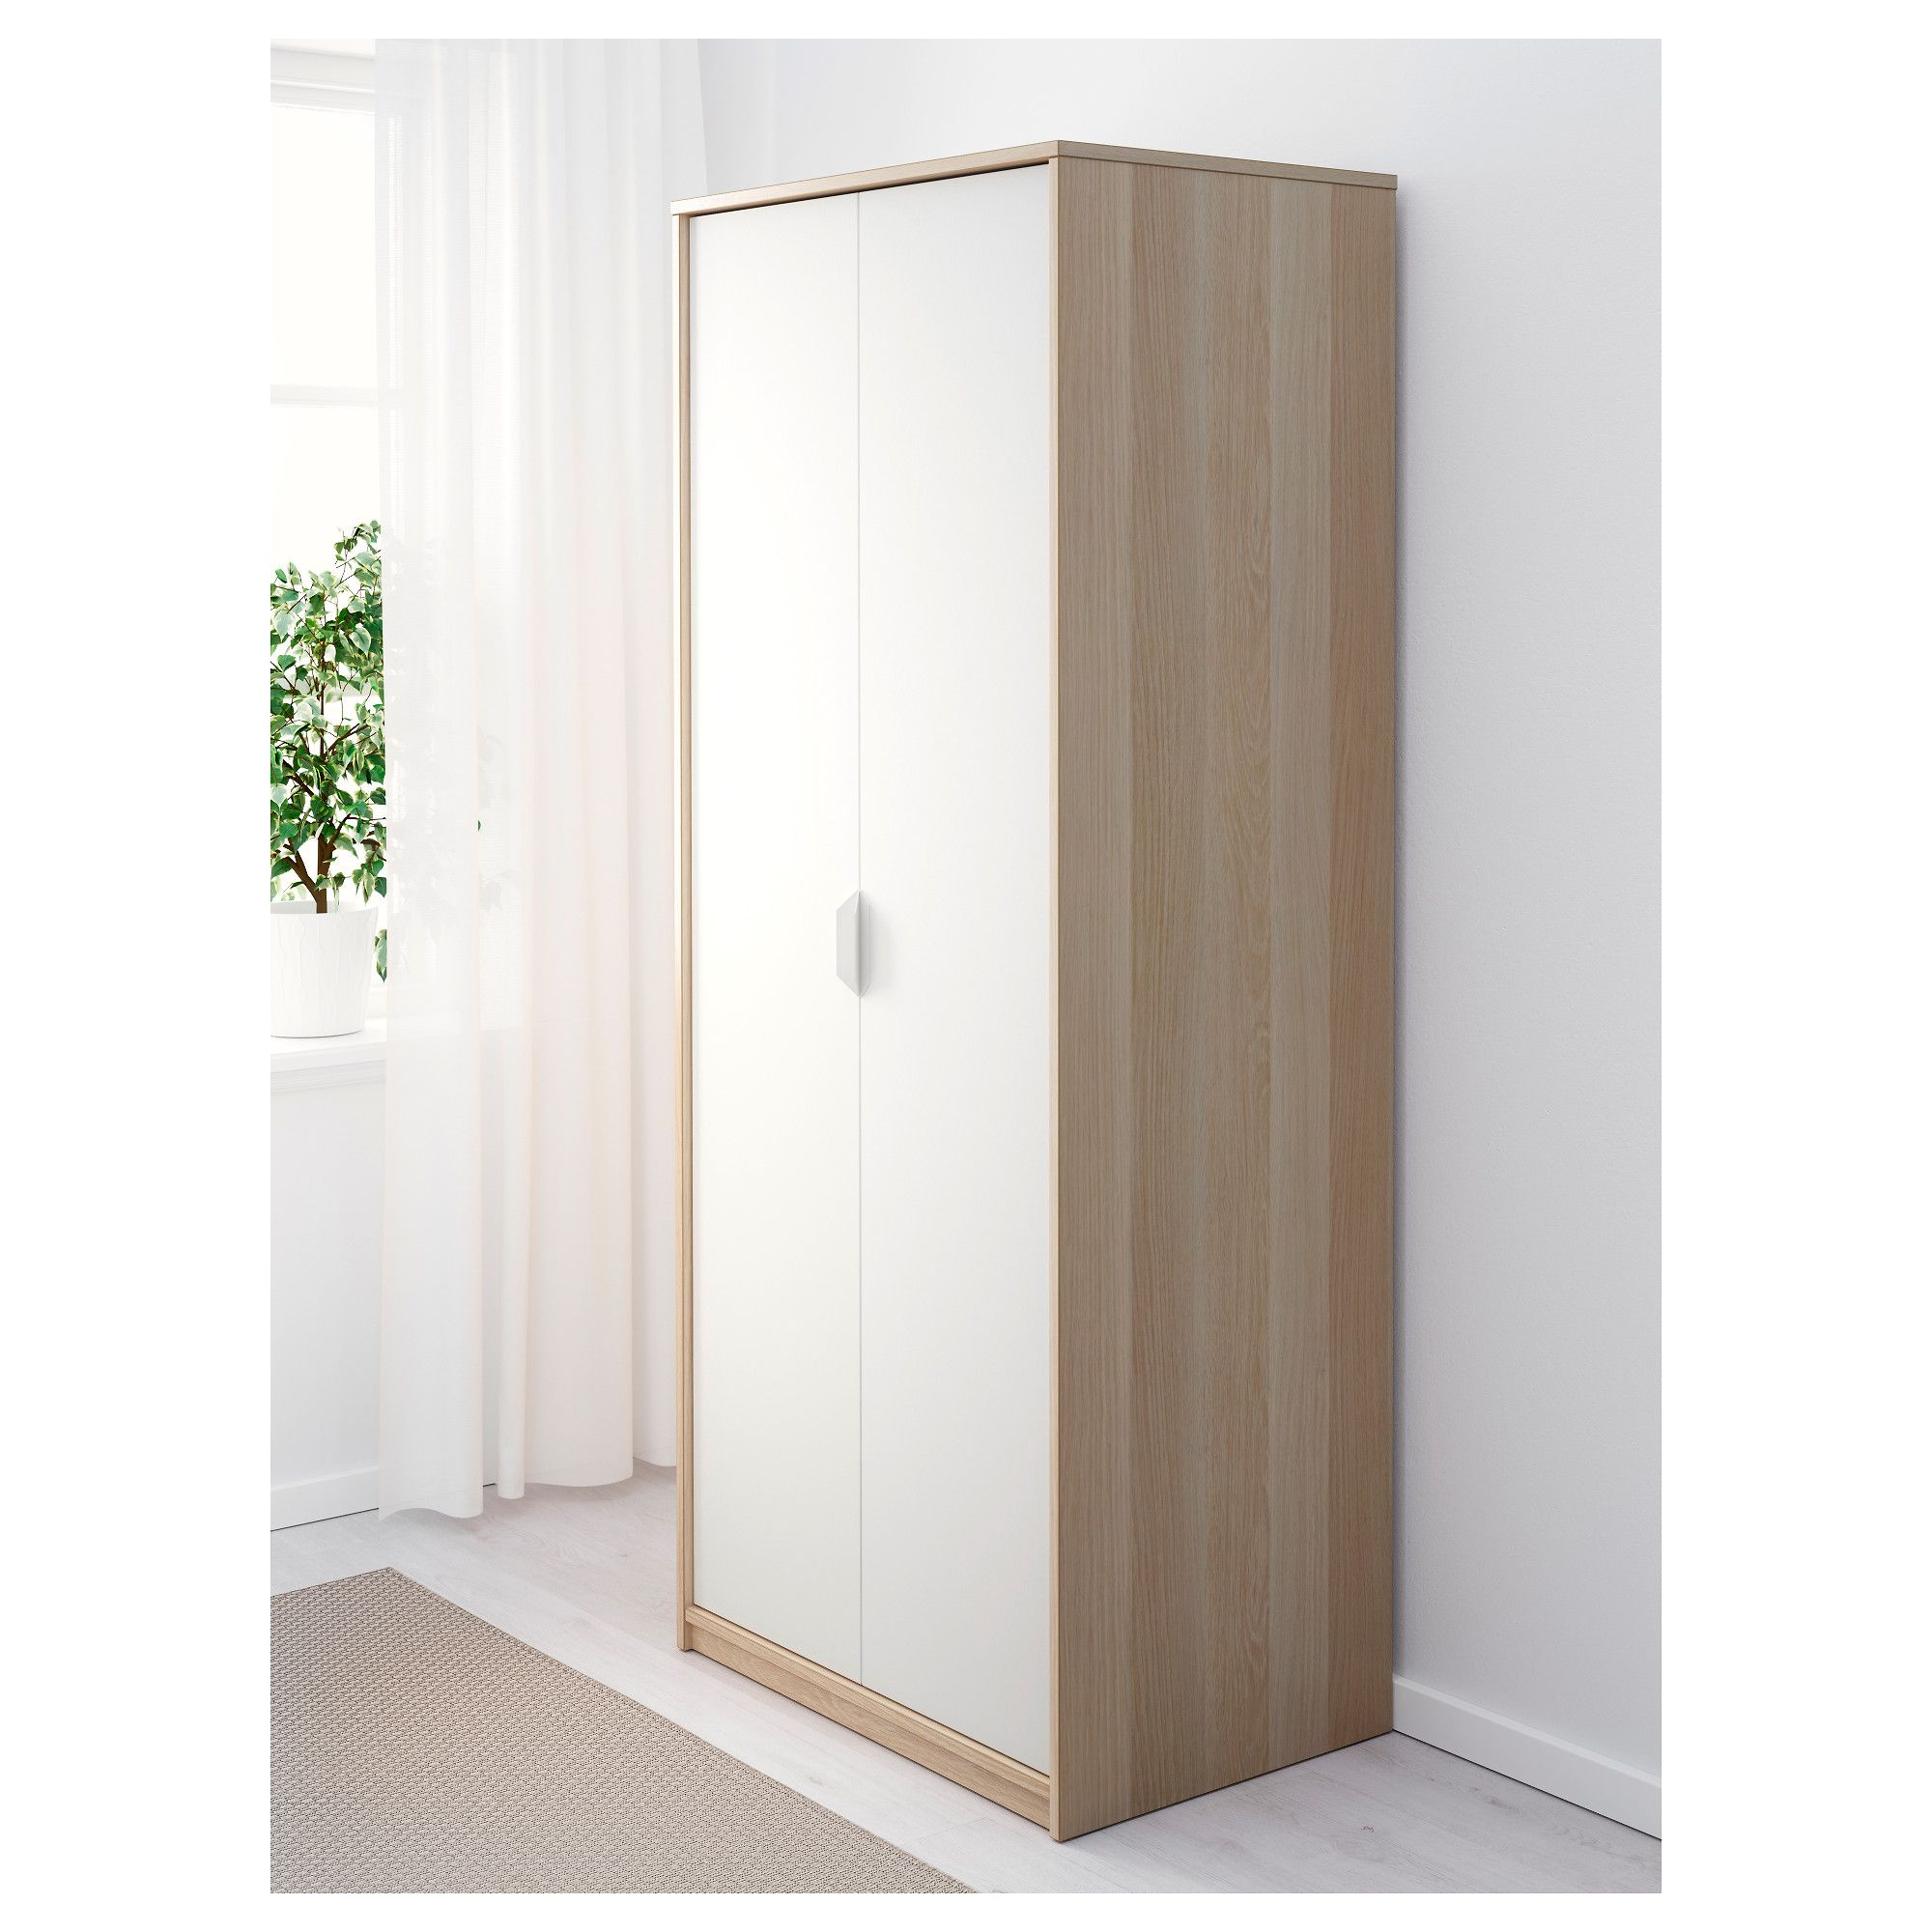 inspirational wardrobes wardrobe in three of doors beautiful sliding badotcom standing free classic bedroom panel com freestanding furniture and luxury oak